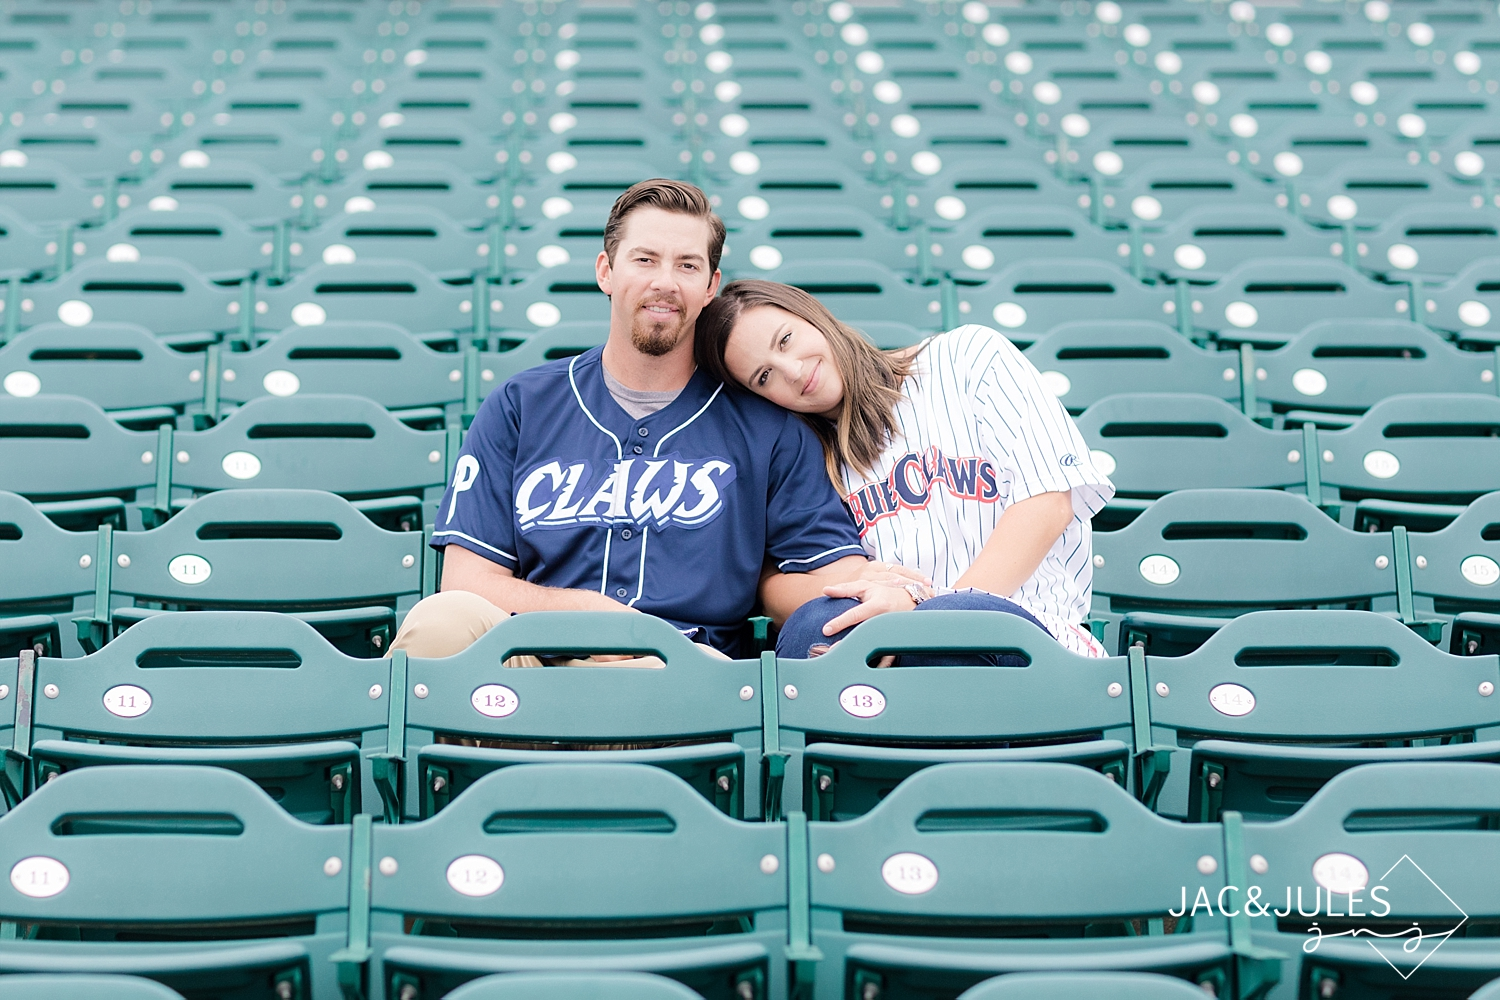 what-to-wear-engagement-photo-lakewood-blue-claws